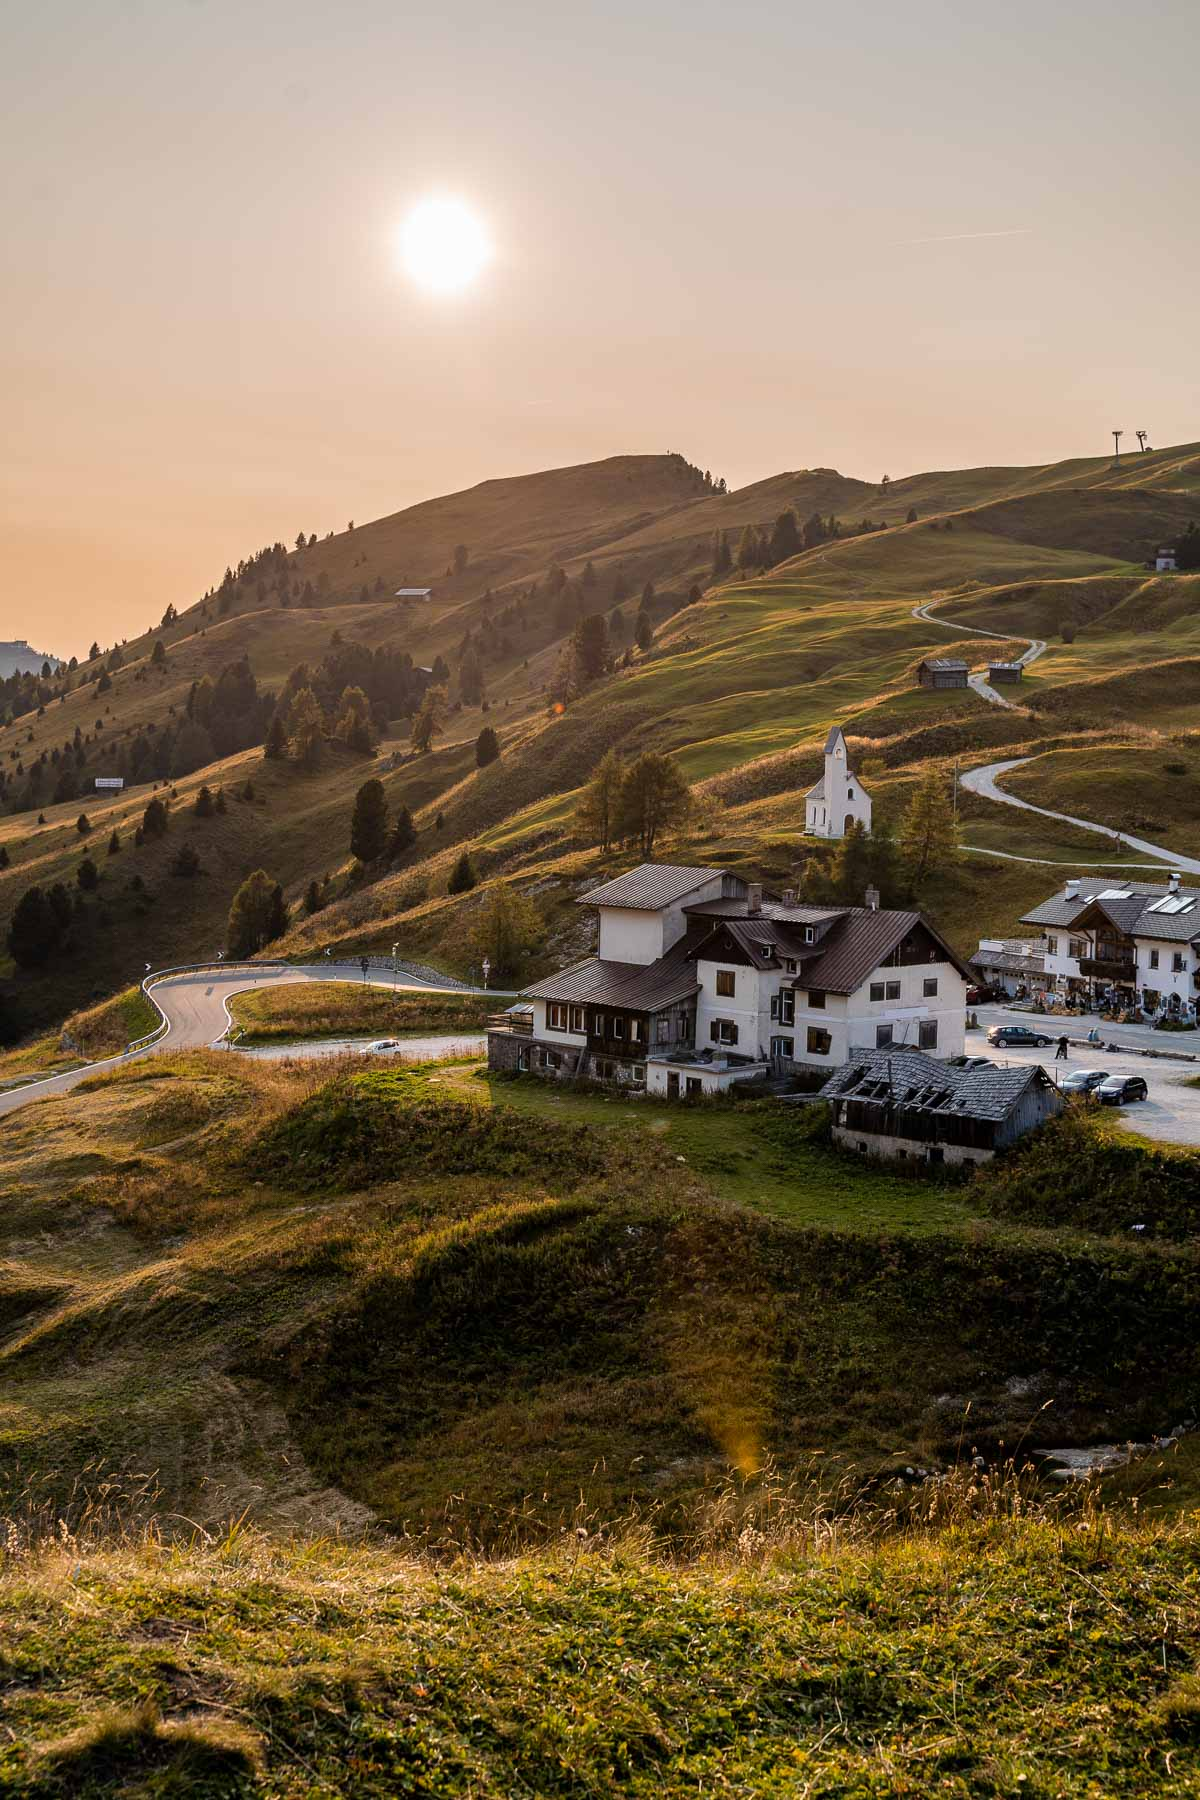 Golden hour at Passo Gardena, one of the most scenic drives in Italy